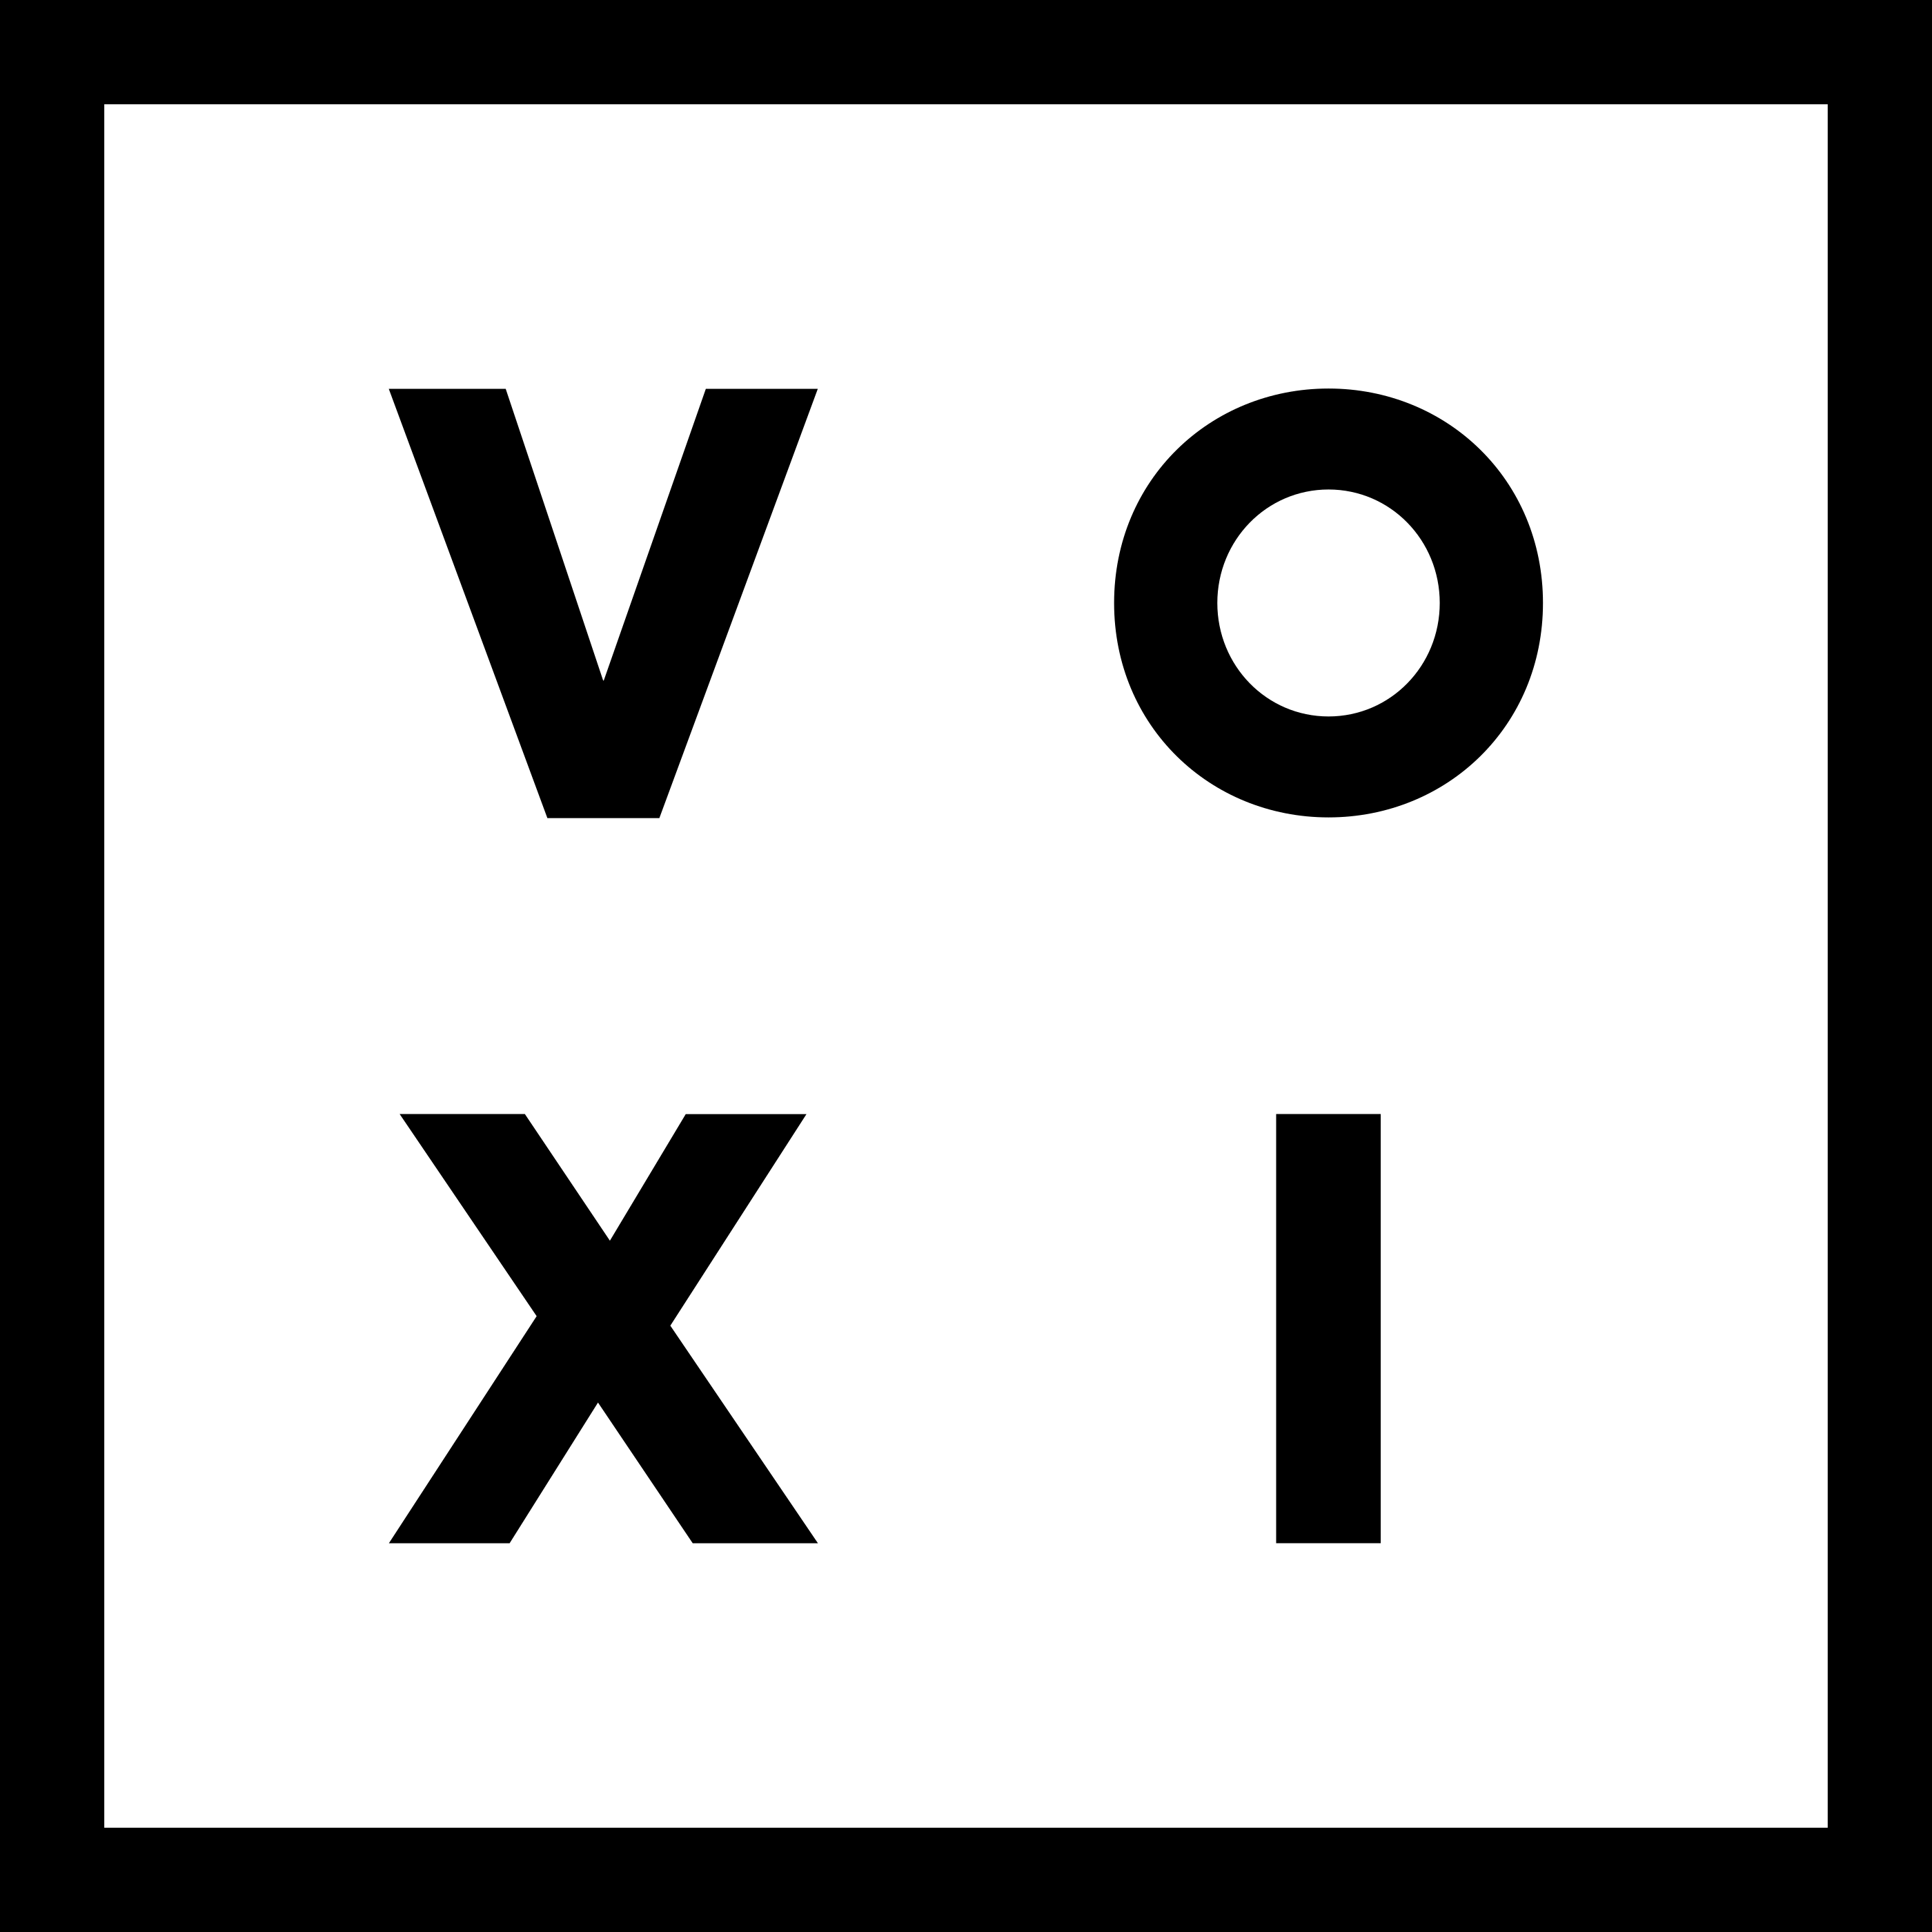 VOXI Review: Vodafone's SIM Only Network With Endless Social